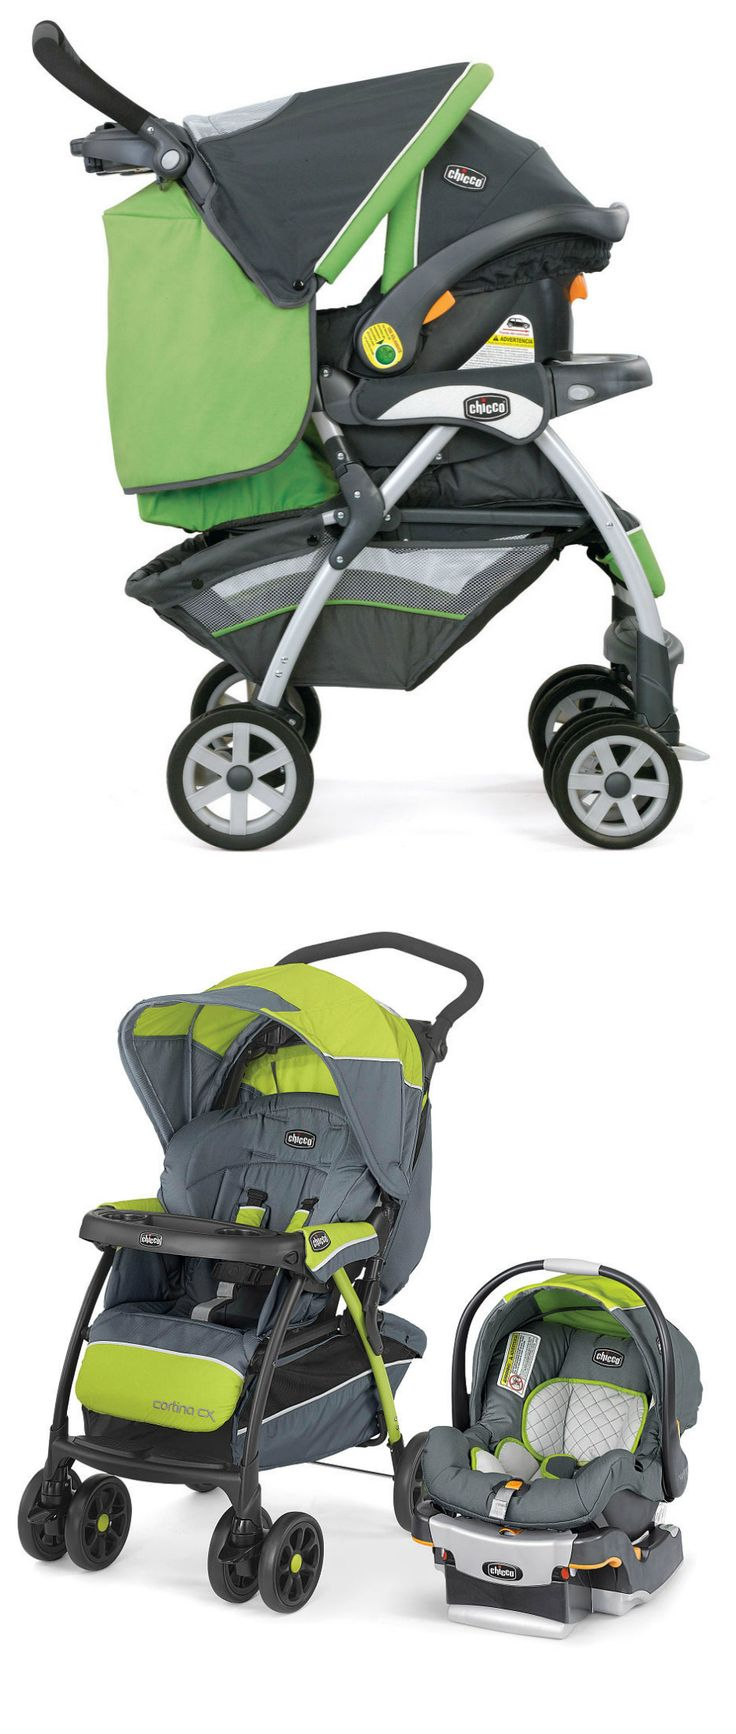 On our list of the 10 best travel systems is the Chicco Cortina CX. Why  sc 1 st  Pinterest & 49 best Must Have Baby Strollers images on Pinterest | Baby ... islam-shia.org